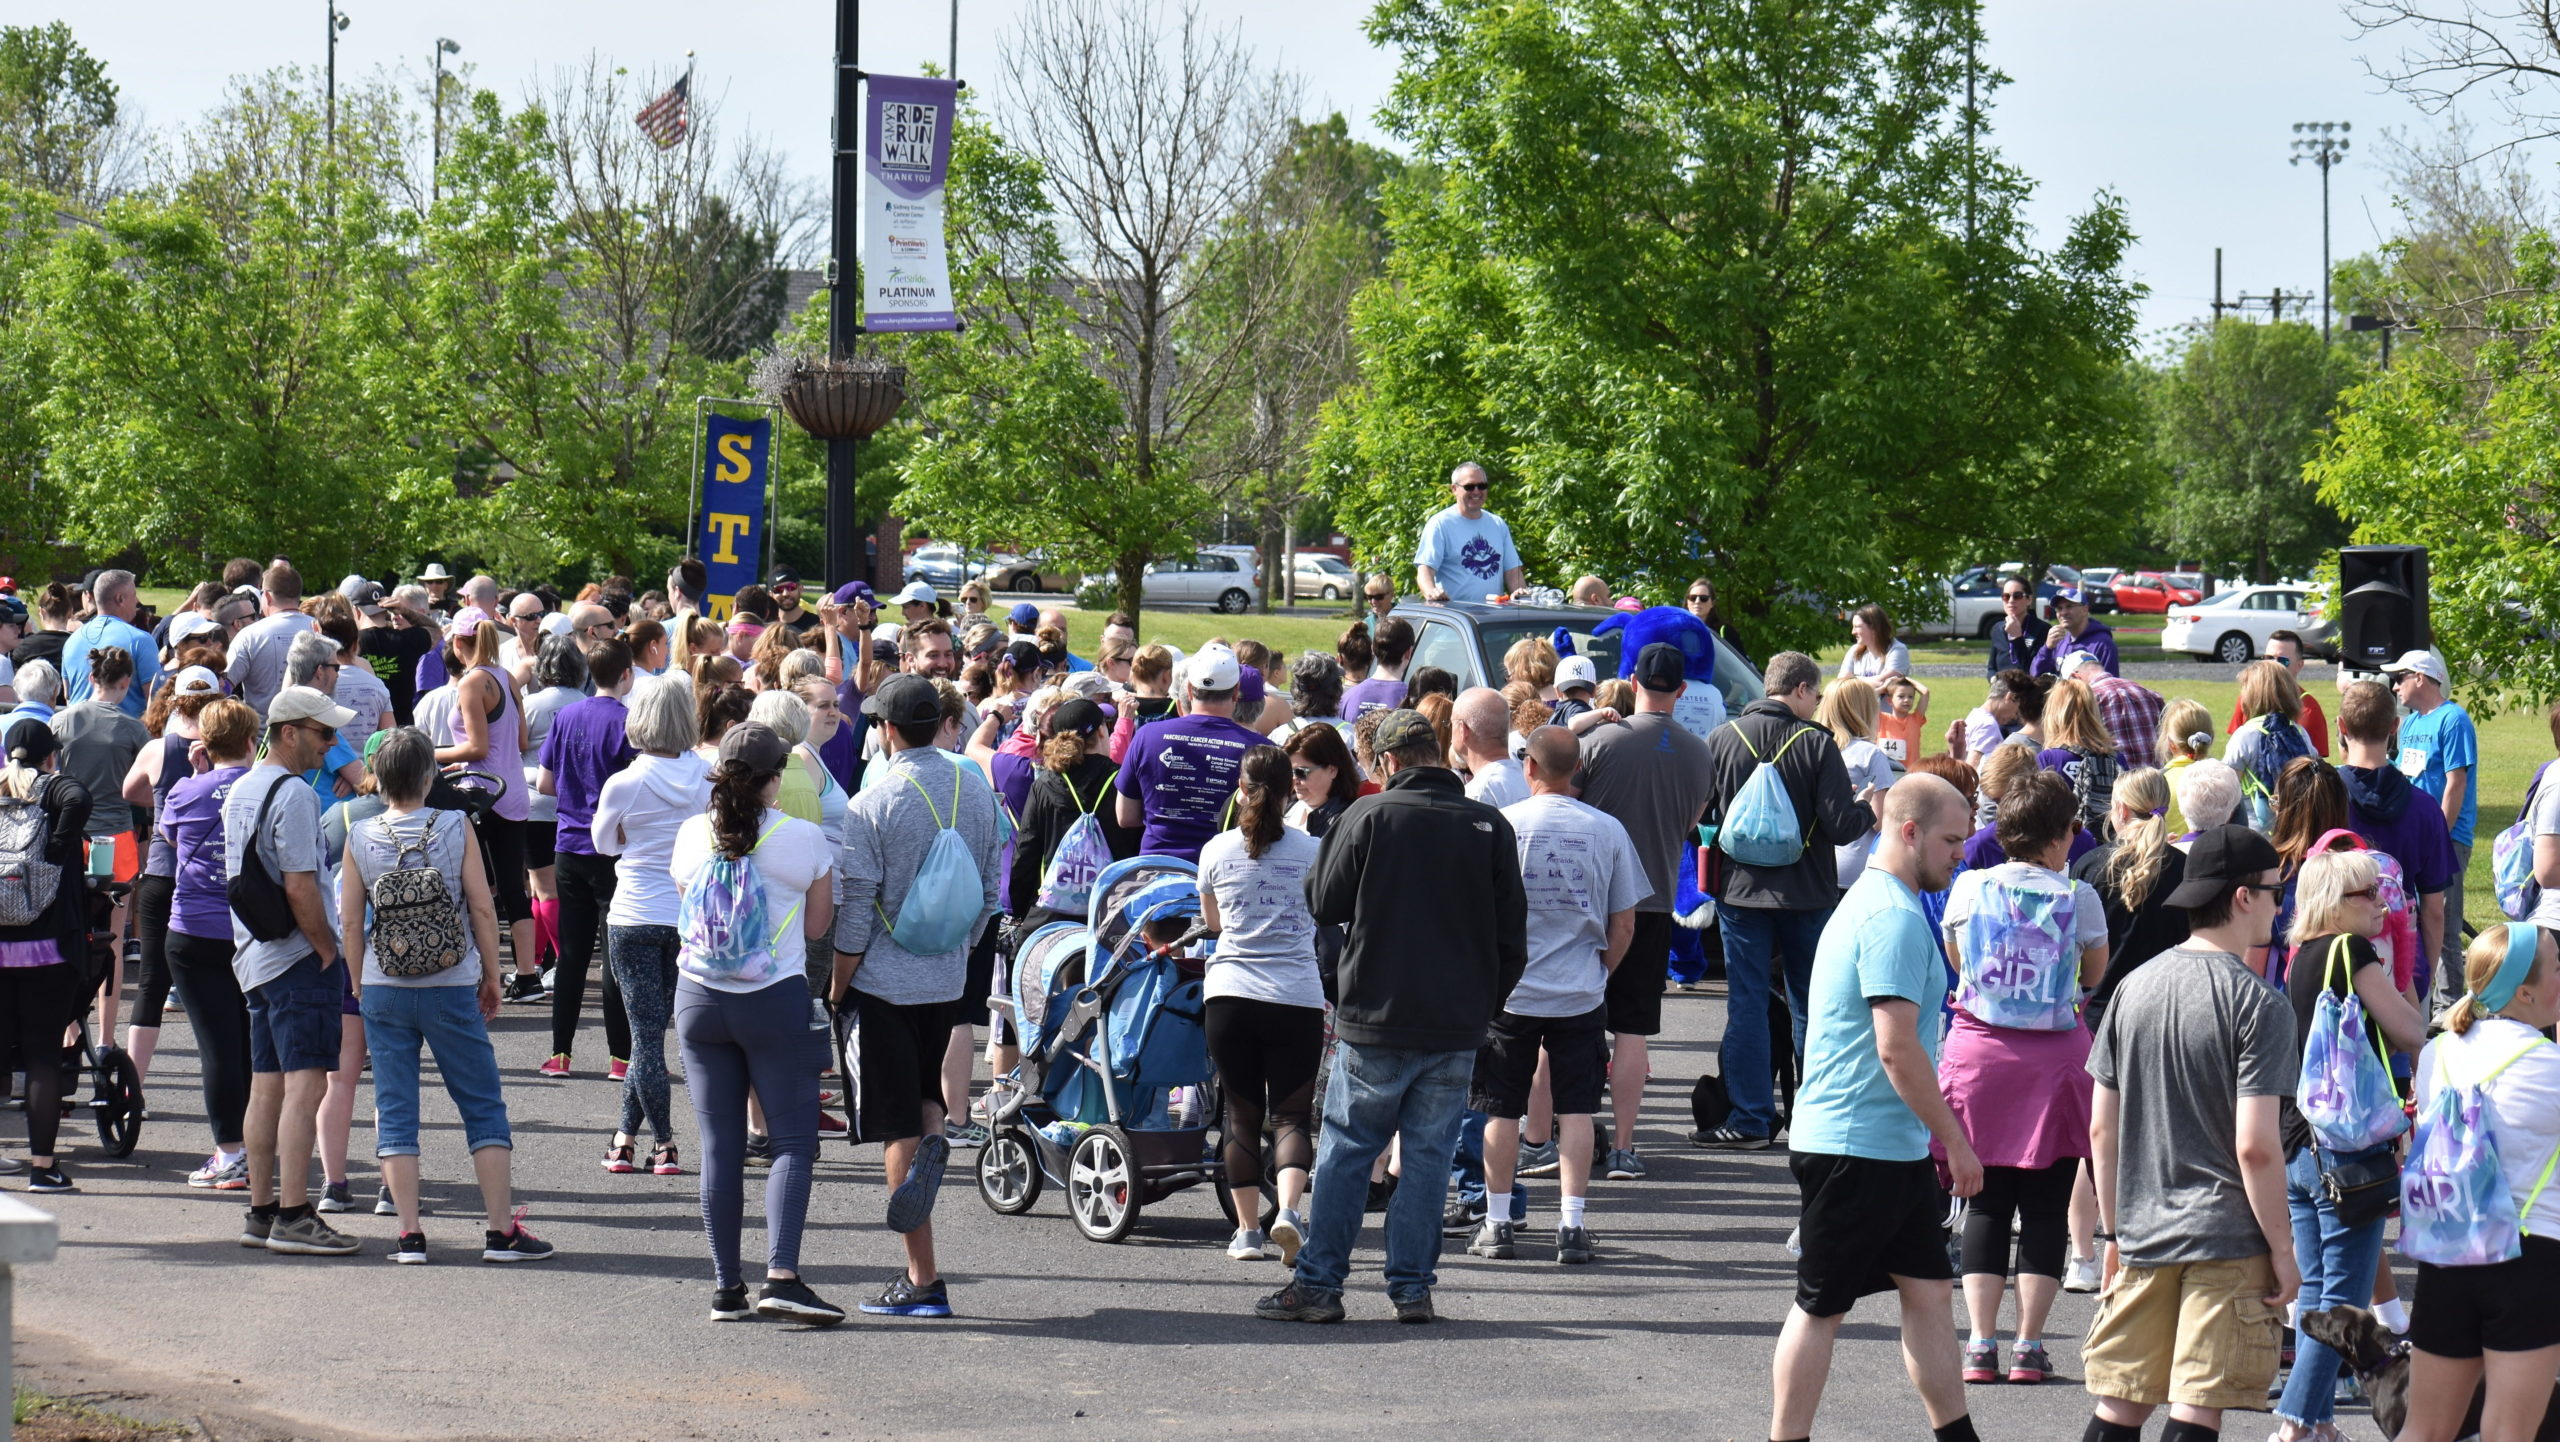 Amy's Ride/Run/Walk for Pancreatic Cancer Research